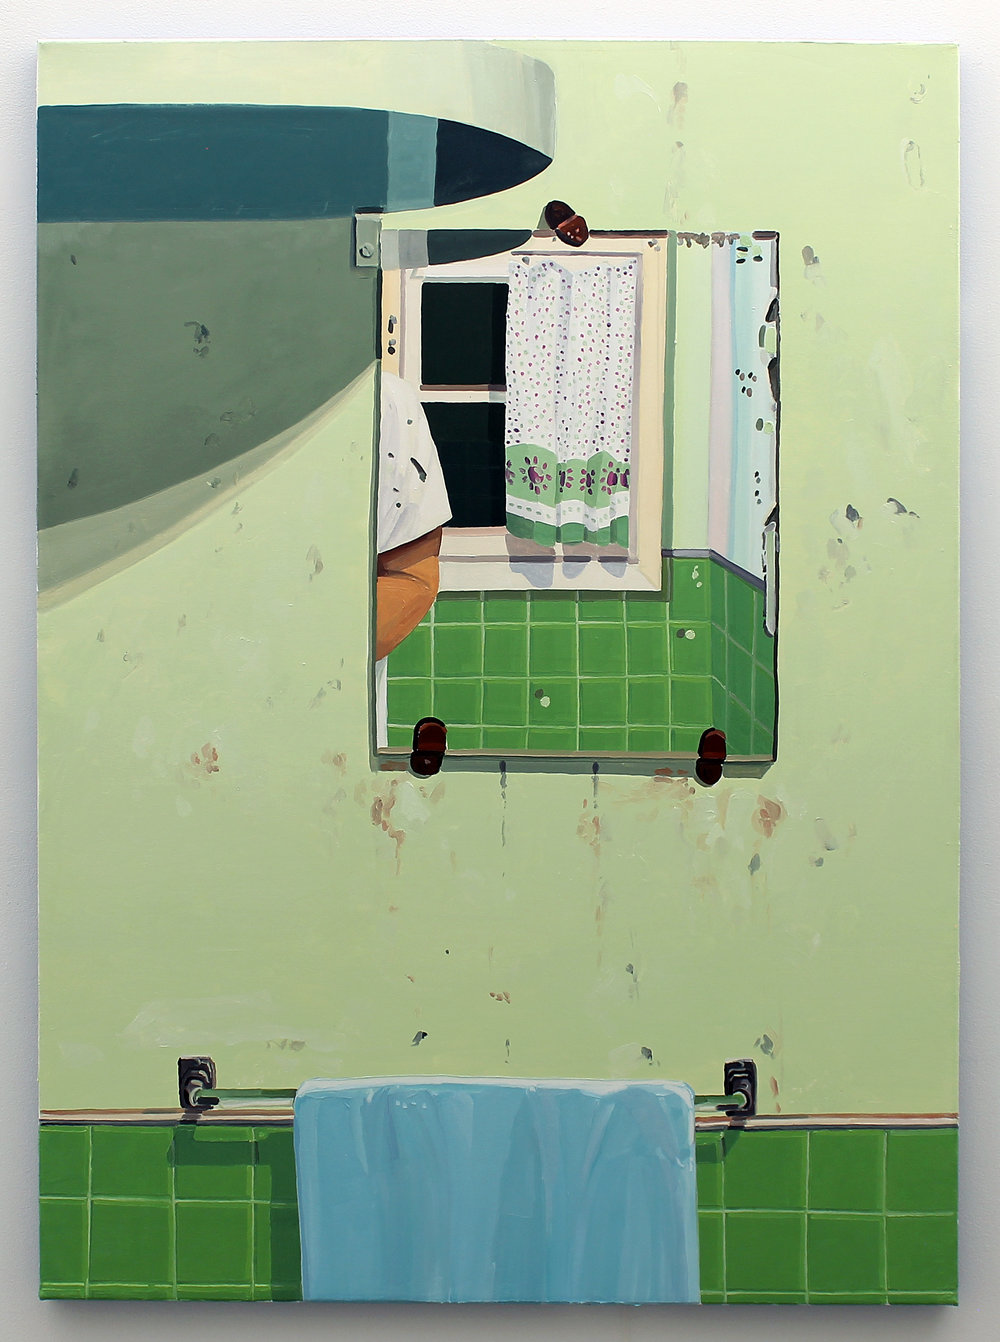 Keiran Brennan Hinton, Bathroom Window, 2017, oil on canvas, 60 x 44 inches SOLD